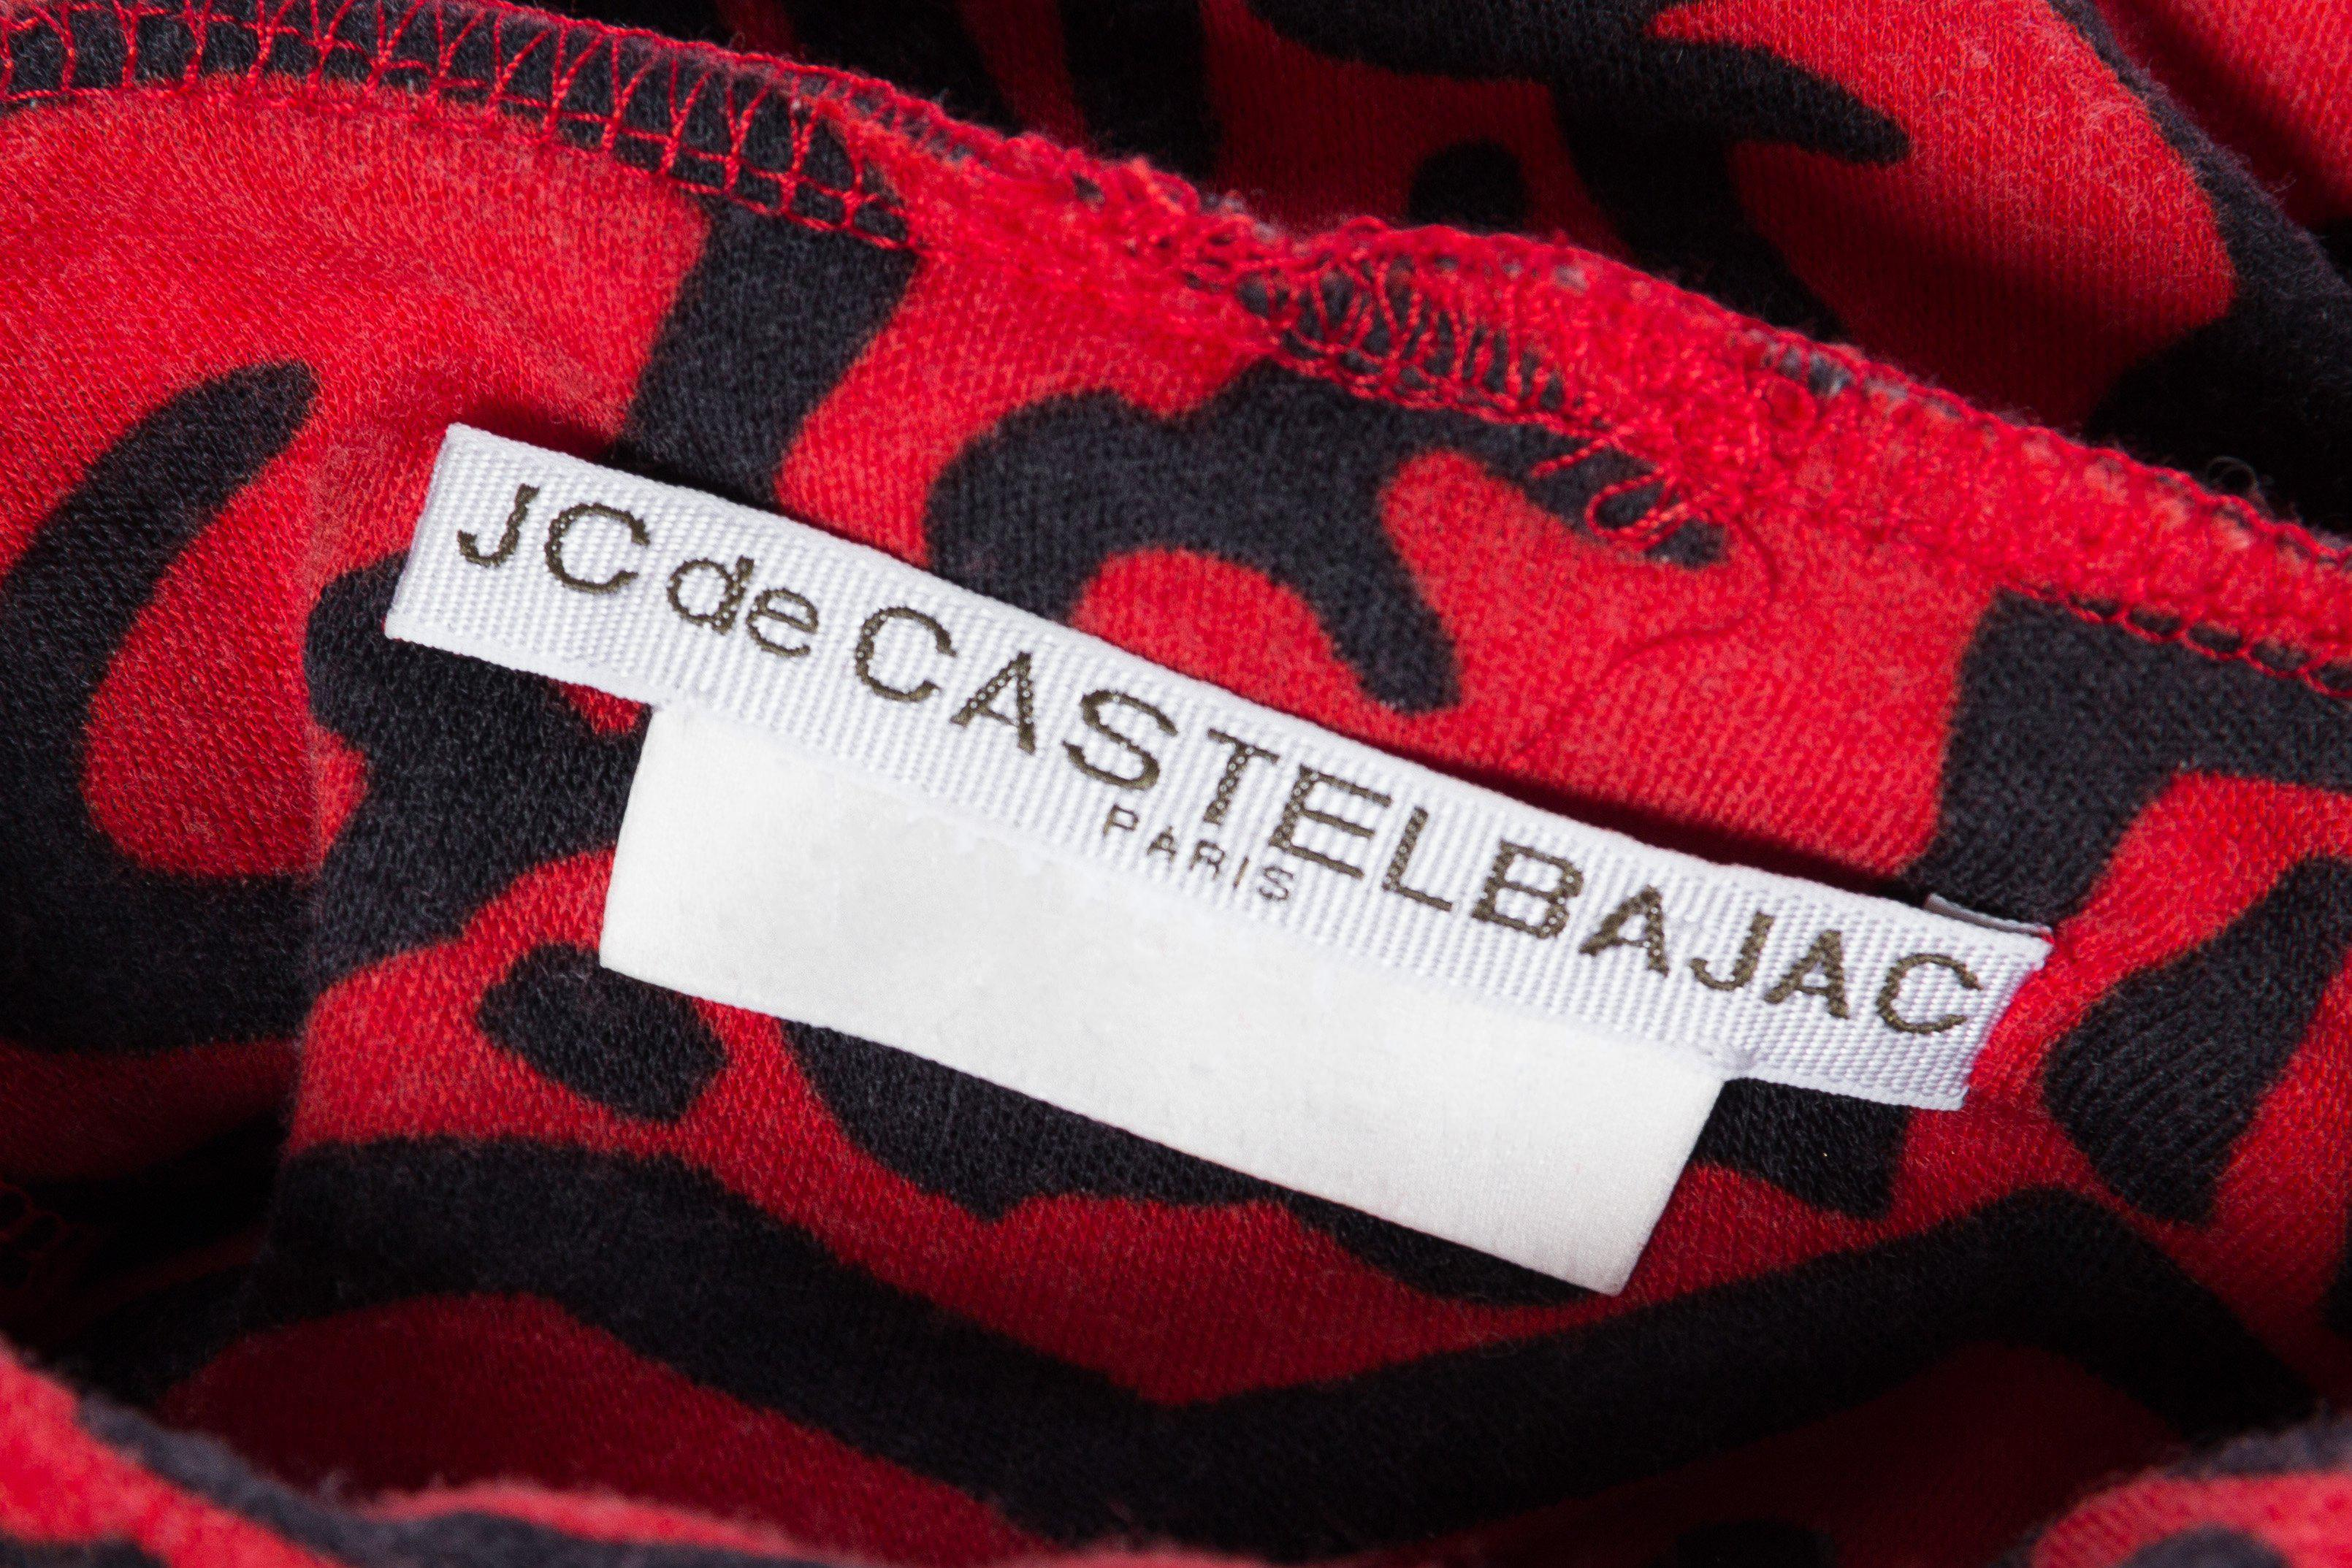 9182faec2 1980s Jean Charled de Castelbajac Keith Haring Radiant Baby Turtleneck  Sweater For Sale at 1stdibs